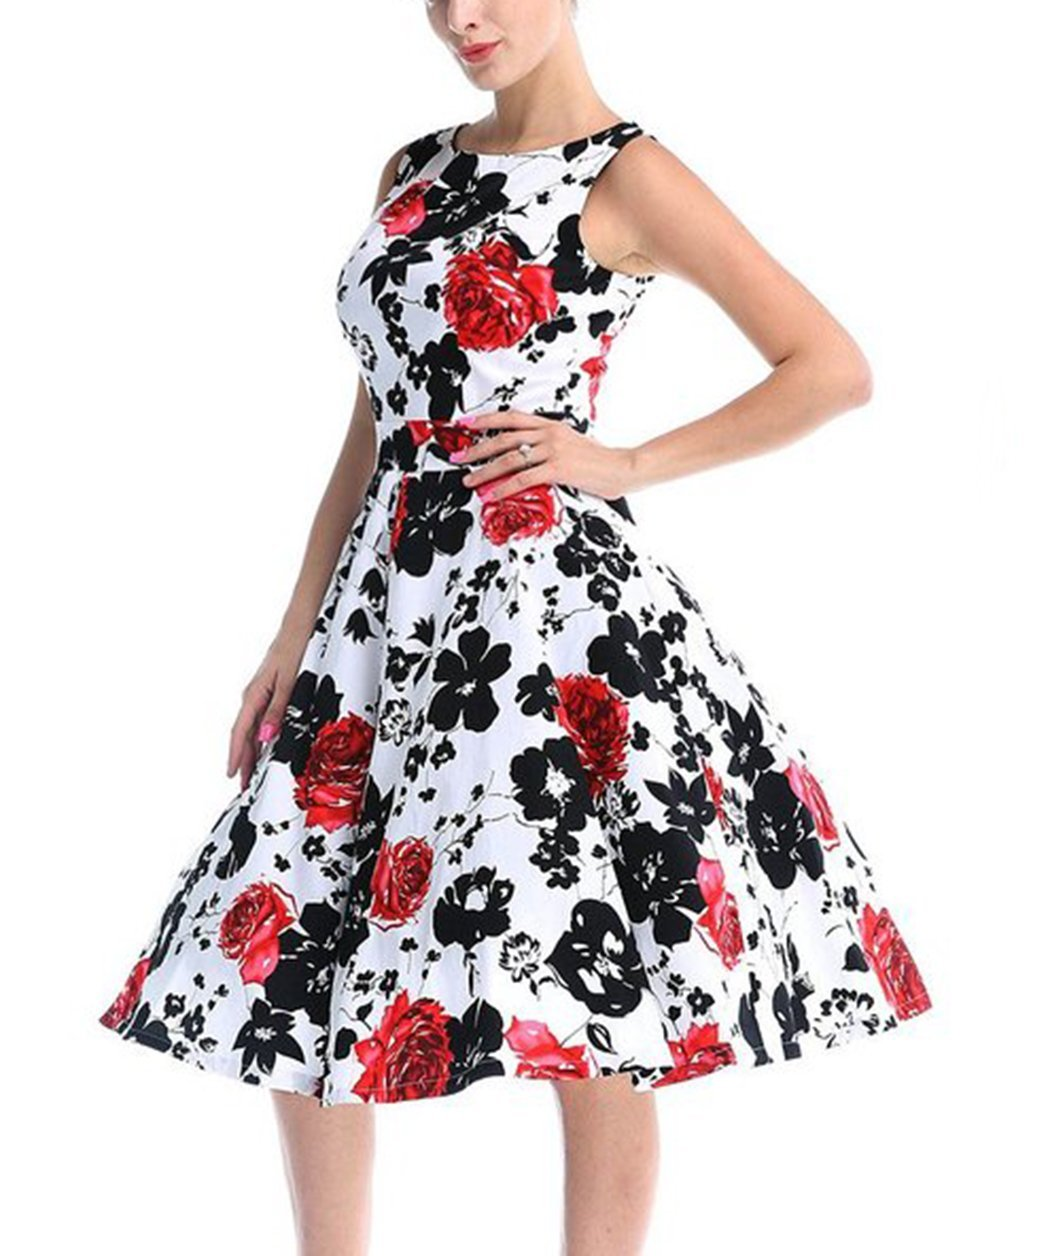 CHIC.U 1950's Vintage Floral Spring Garden Party Picnic Dress Party Cocktail Dress 0